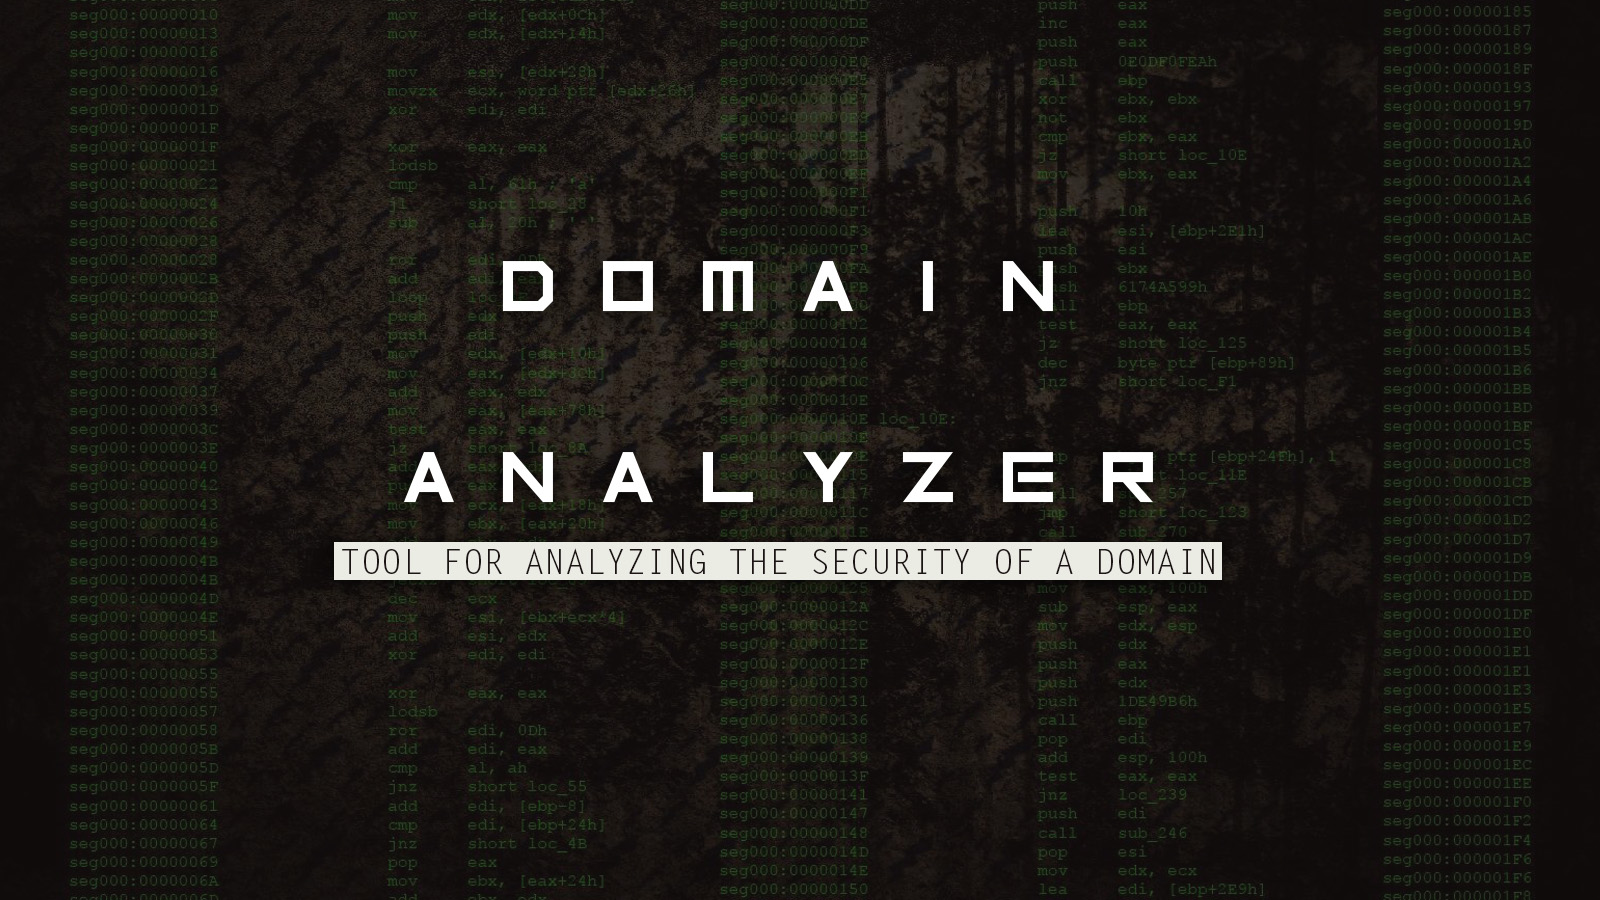 Domain Analyzer - Tool For Analyzing the Security of a Domain